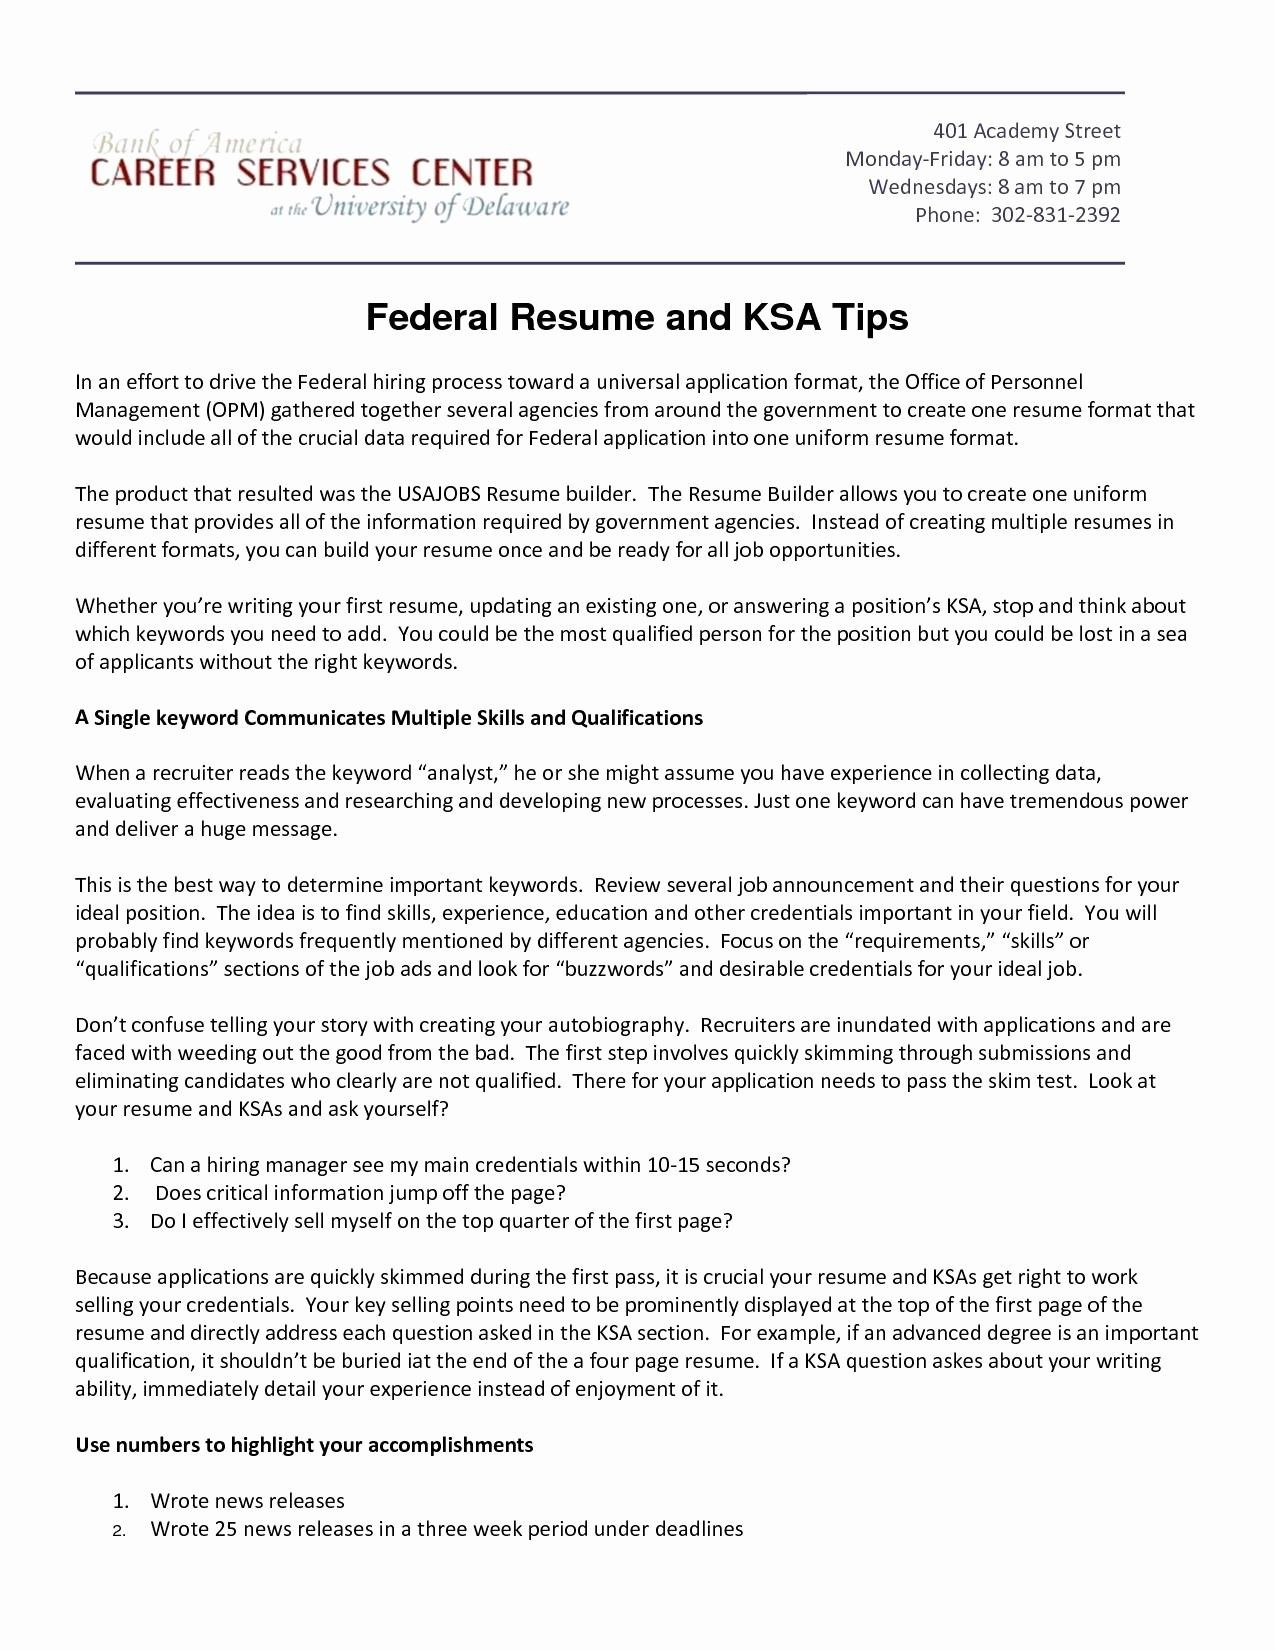 Usajobs Gov Resume Builder - Usajobs Gov Resume Builder